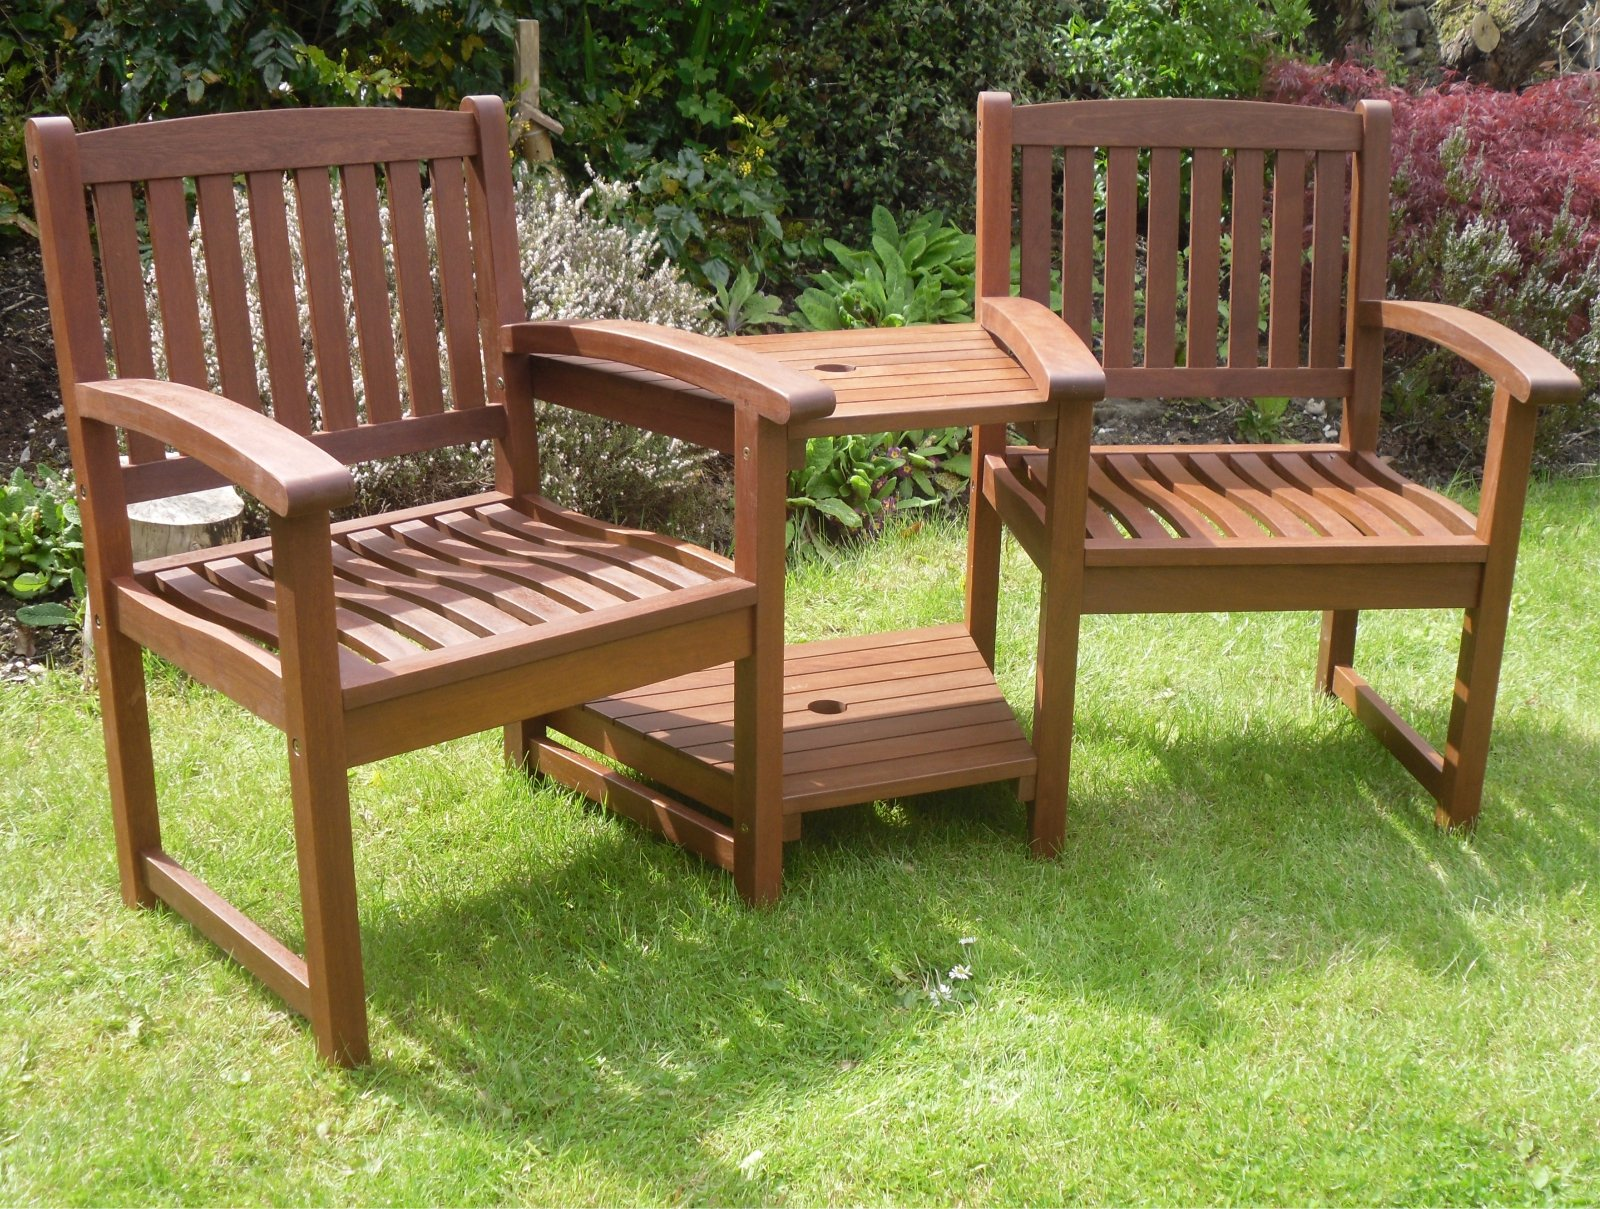 Solid Wooden Bench Seat: Amazon.co.uk